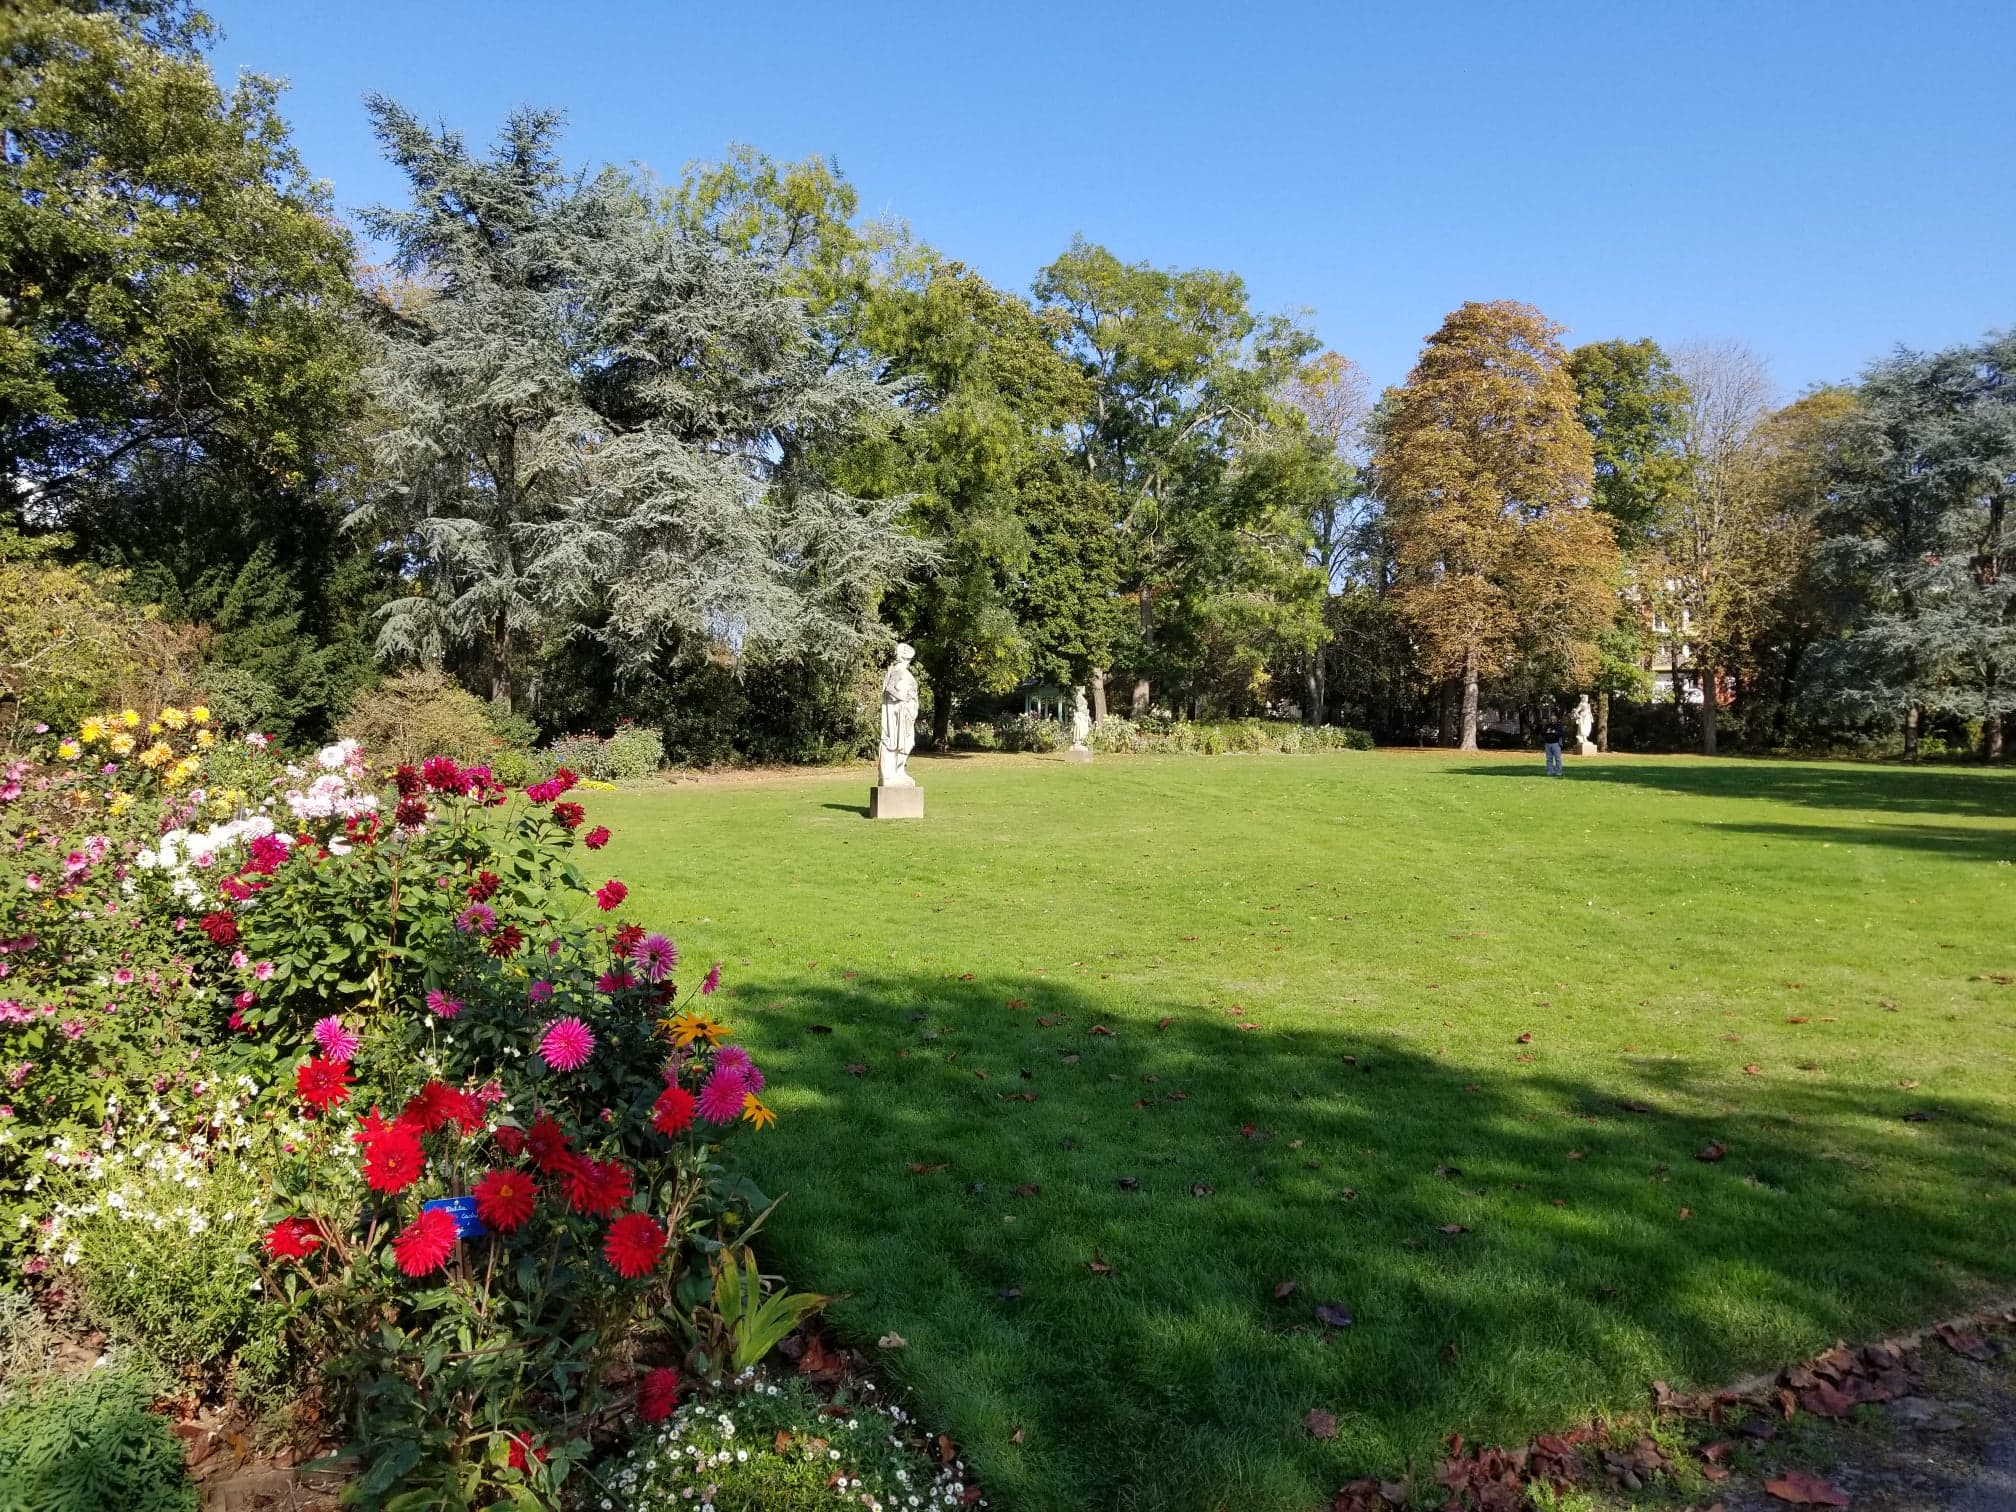 There are statues in the back, and on the left are some dahlia plants. At the right is a large grassy expanse